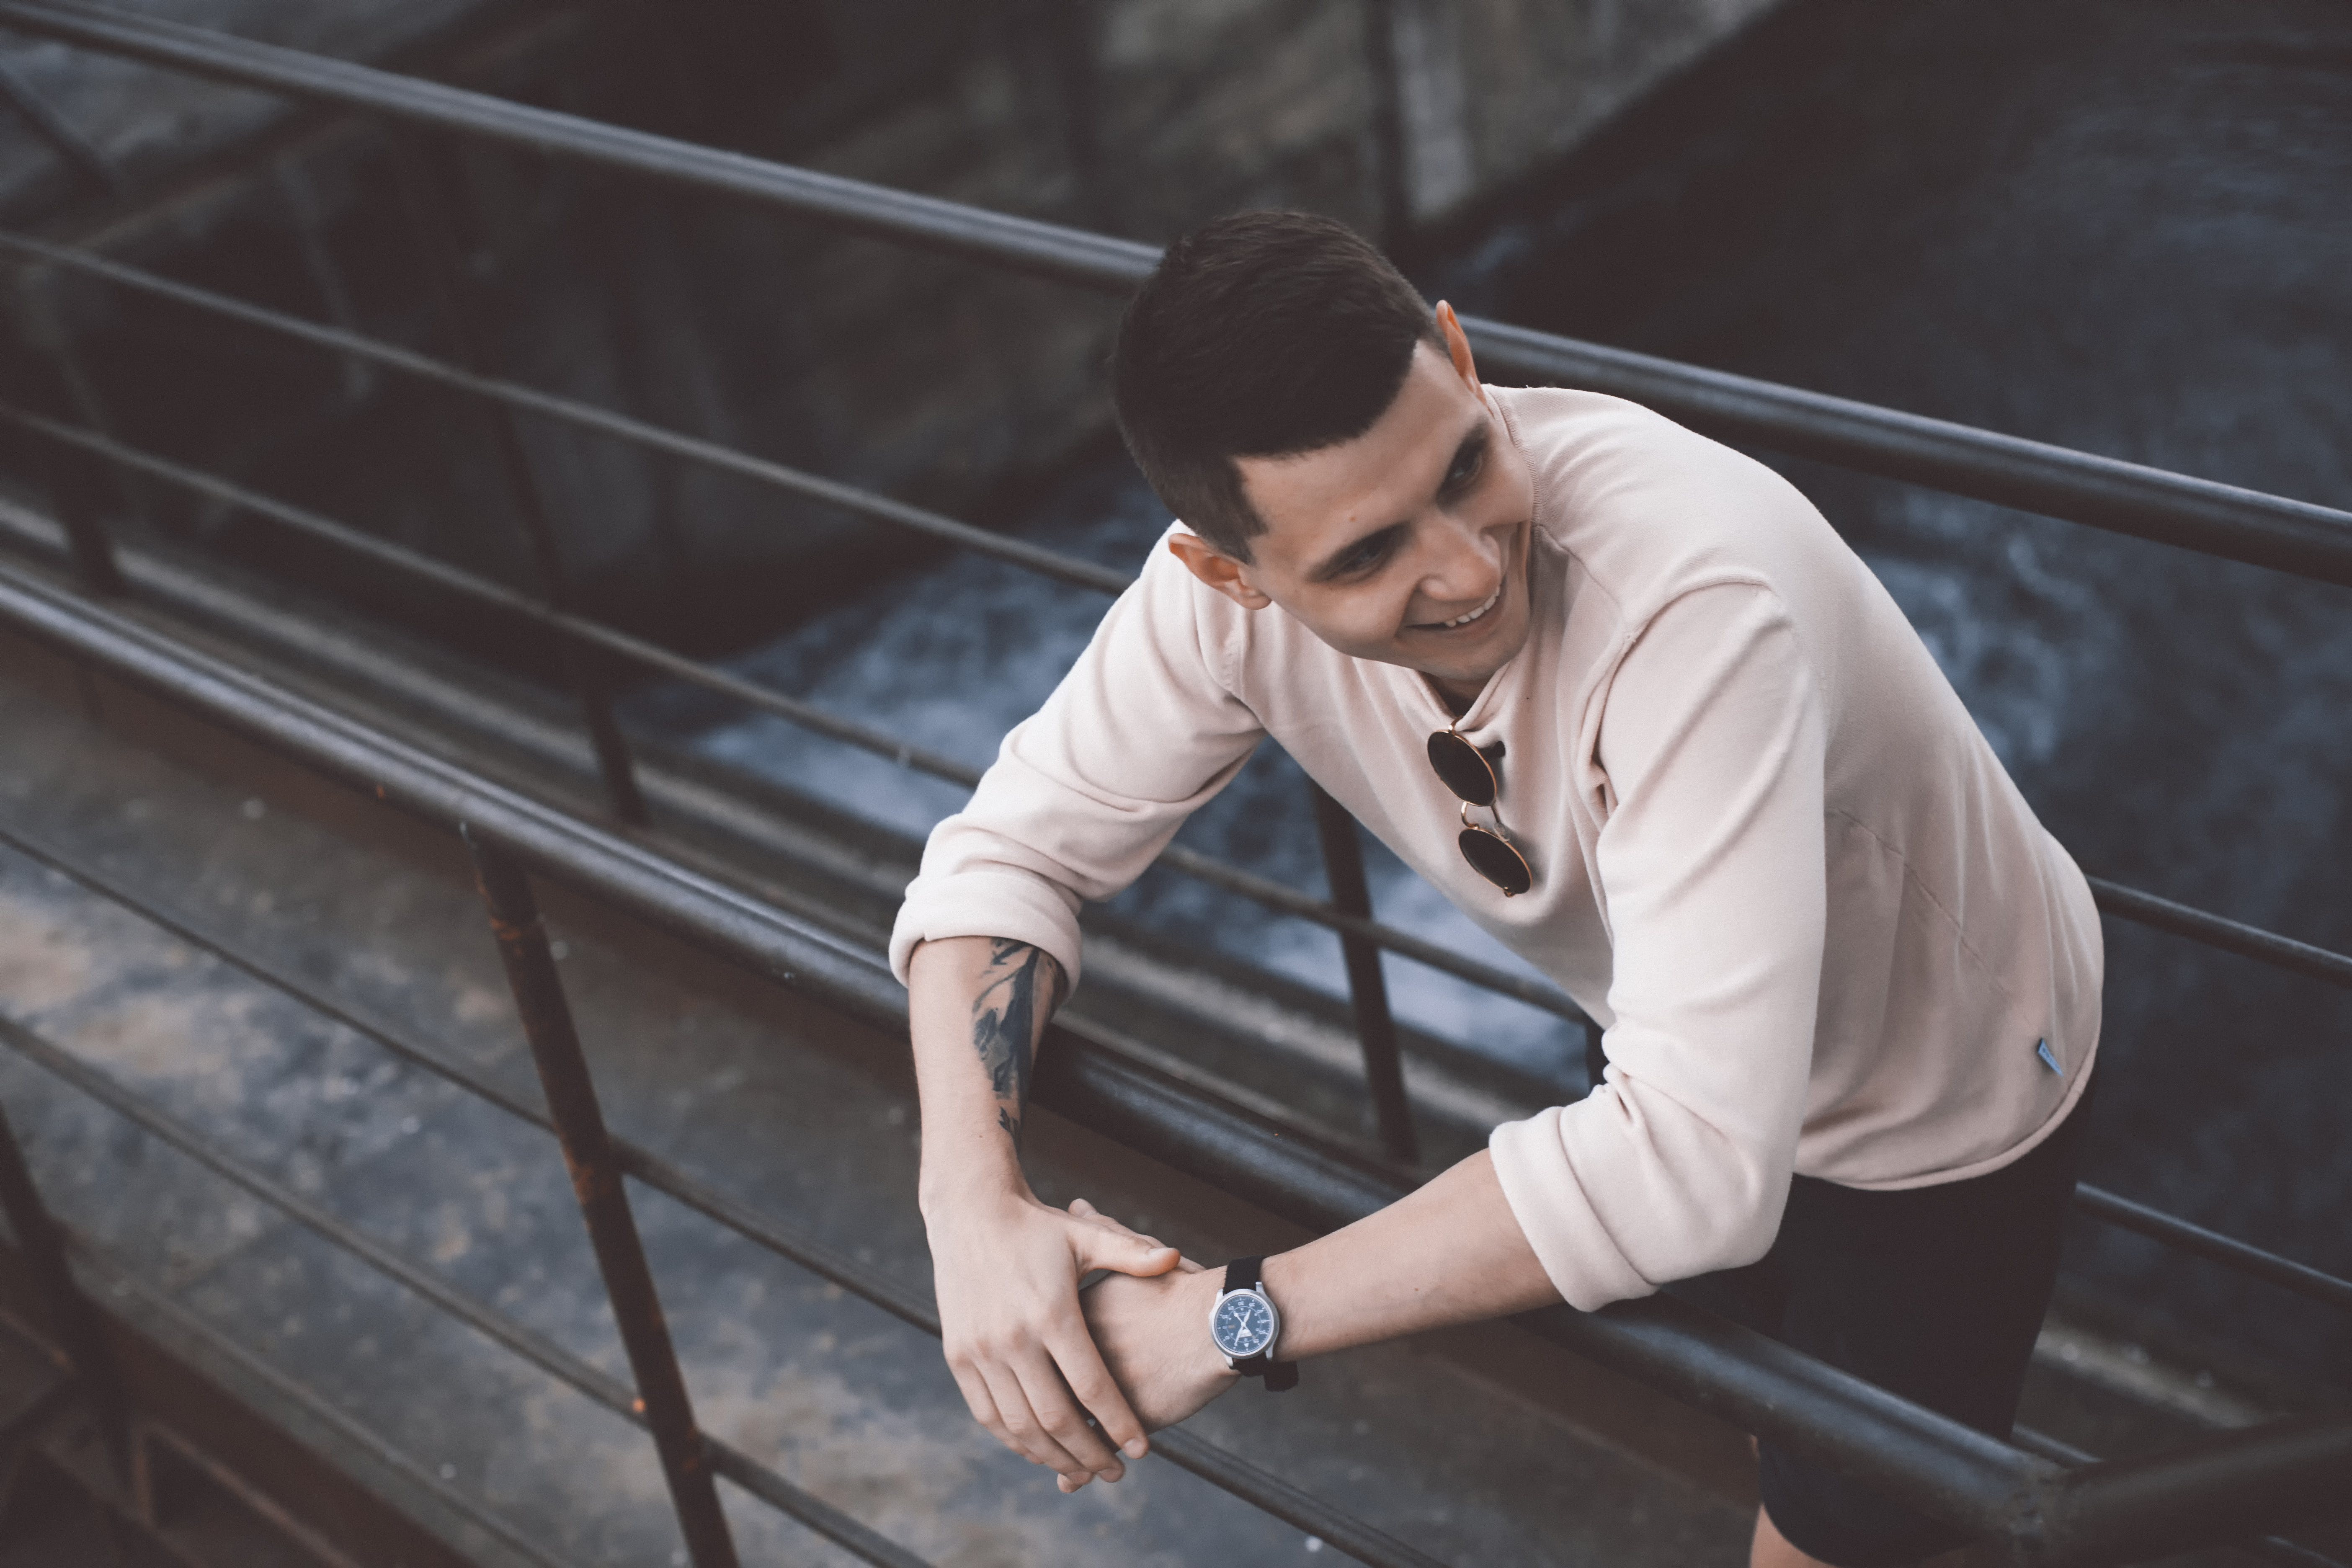 Man Smiling While Leaning On Railings